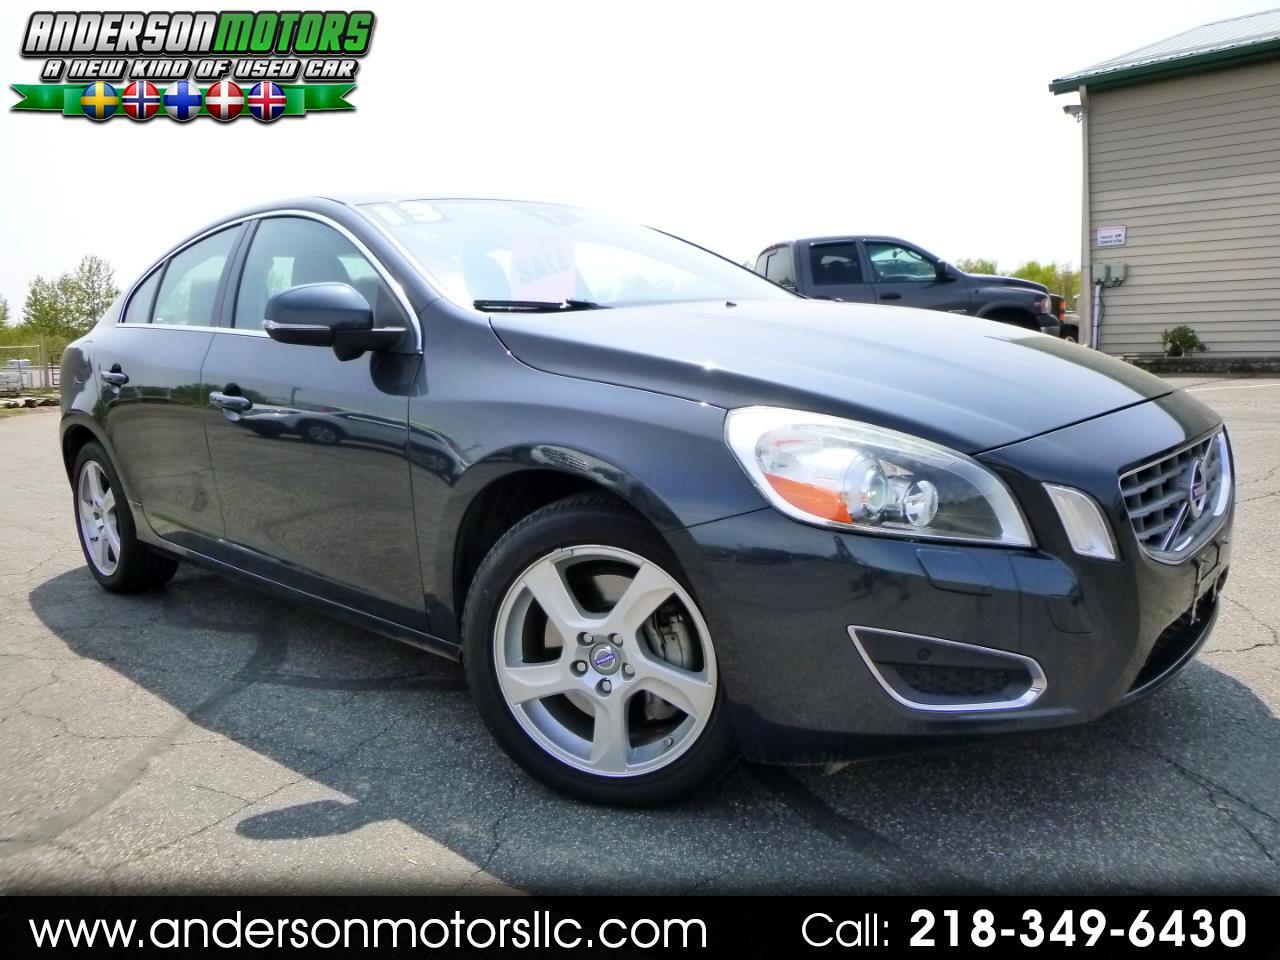 2013 Volvo S60 T5 AWD Inscription Platinum